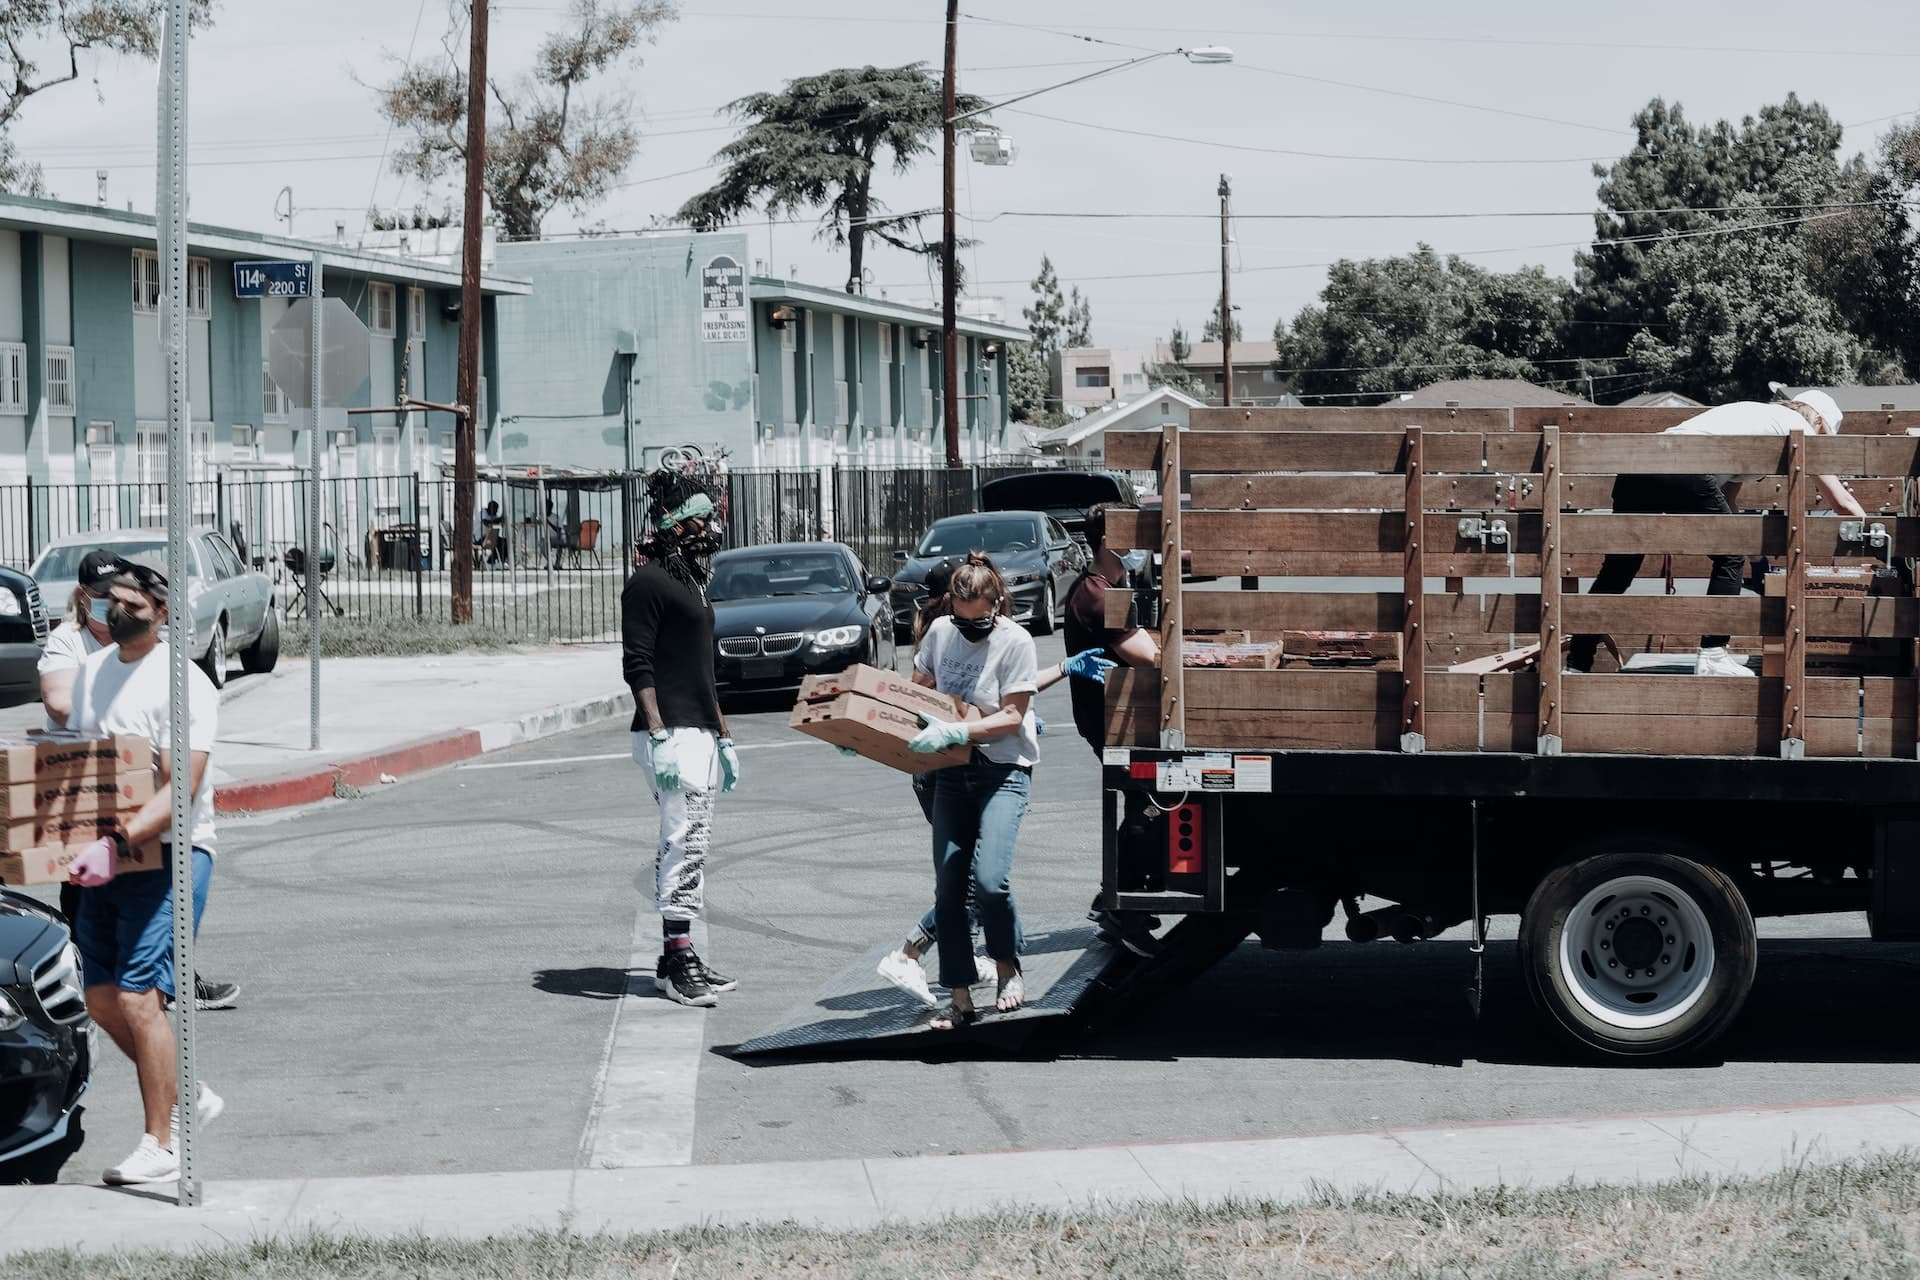 People unloading boxes of food from a truck in the street.